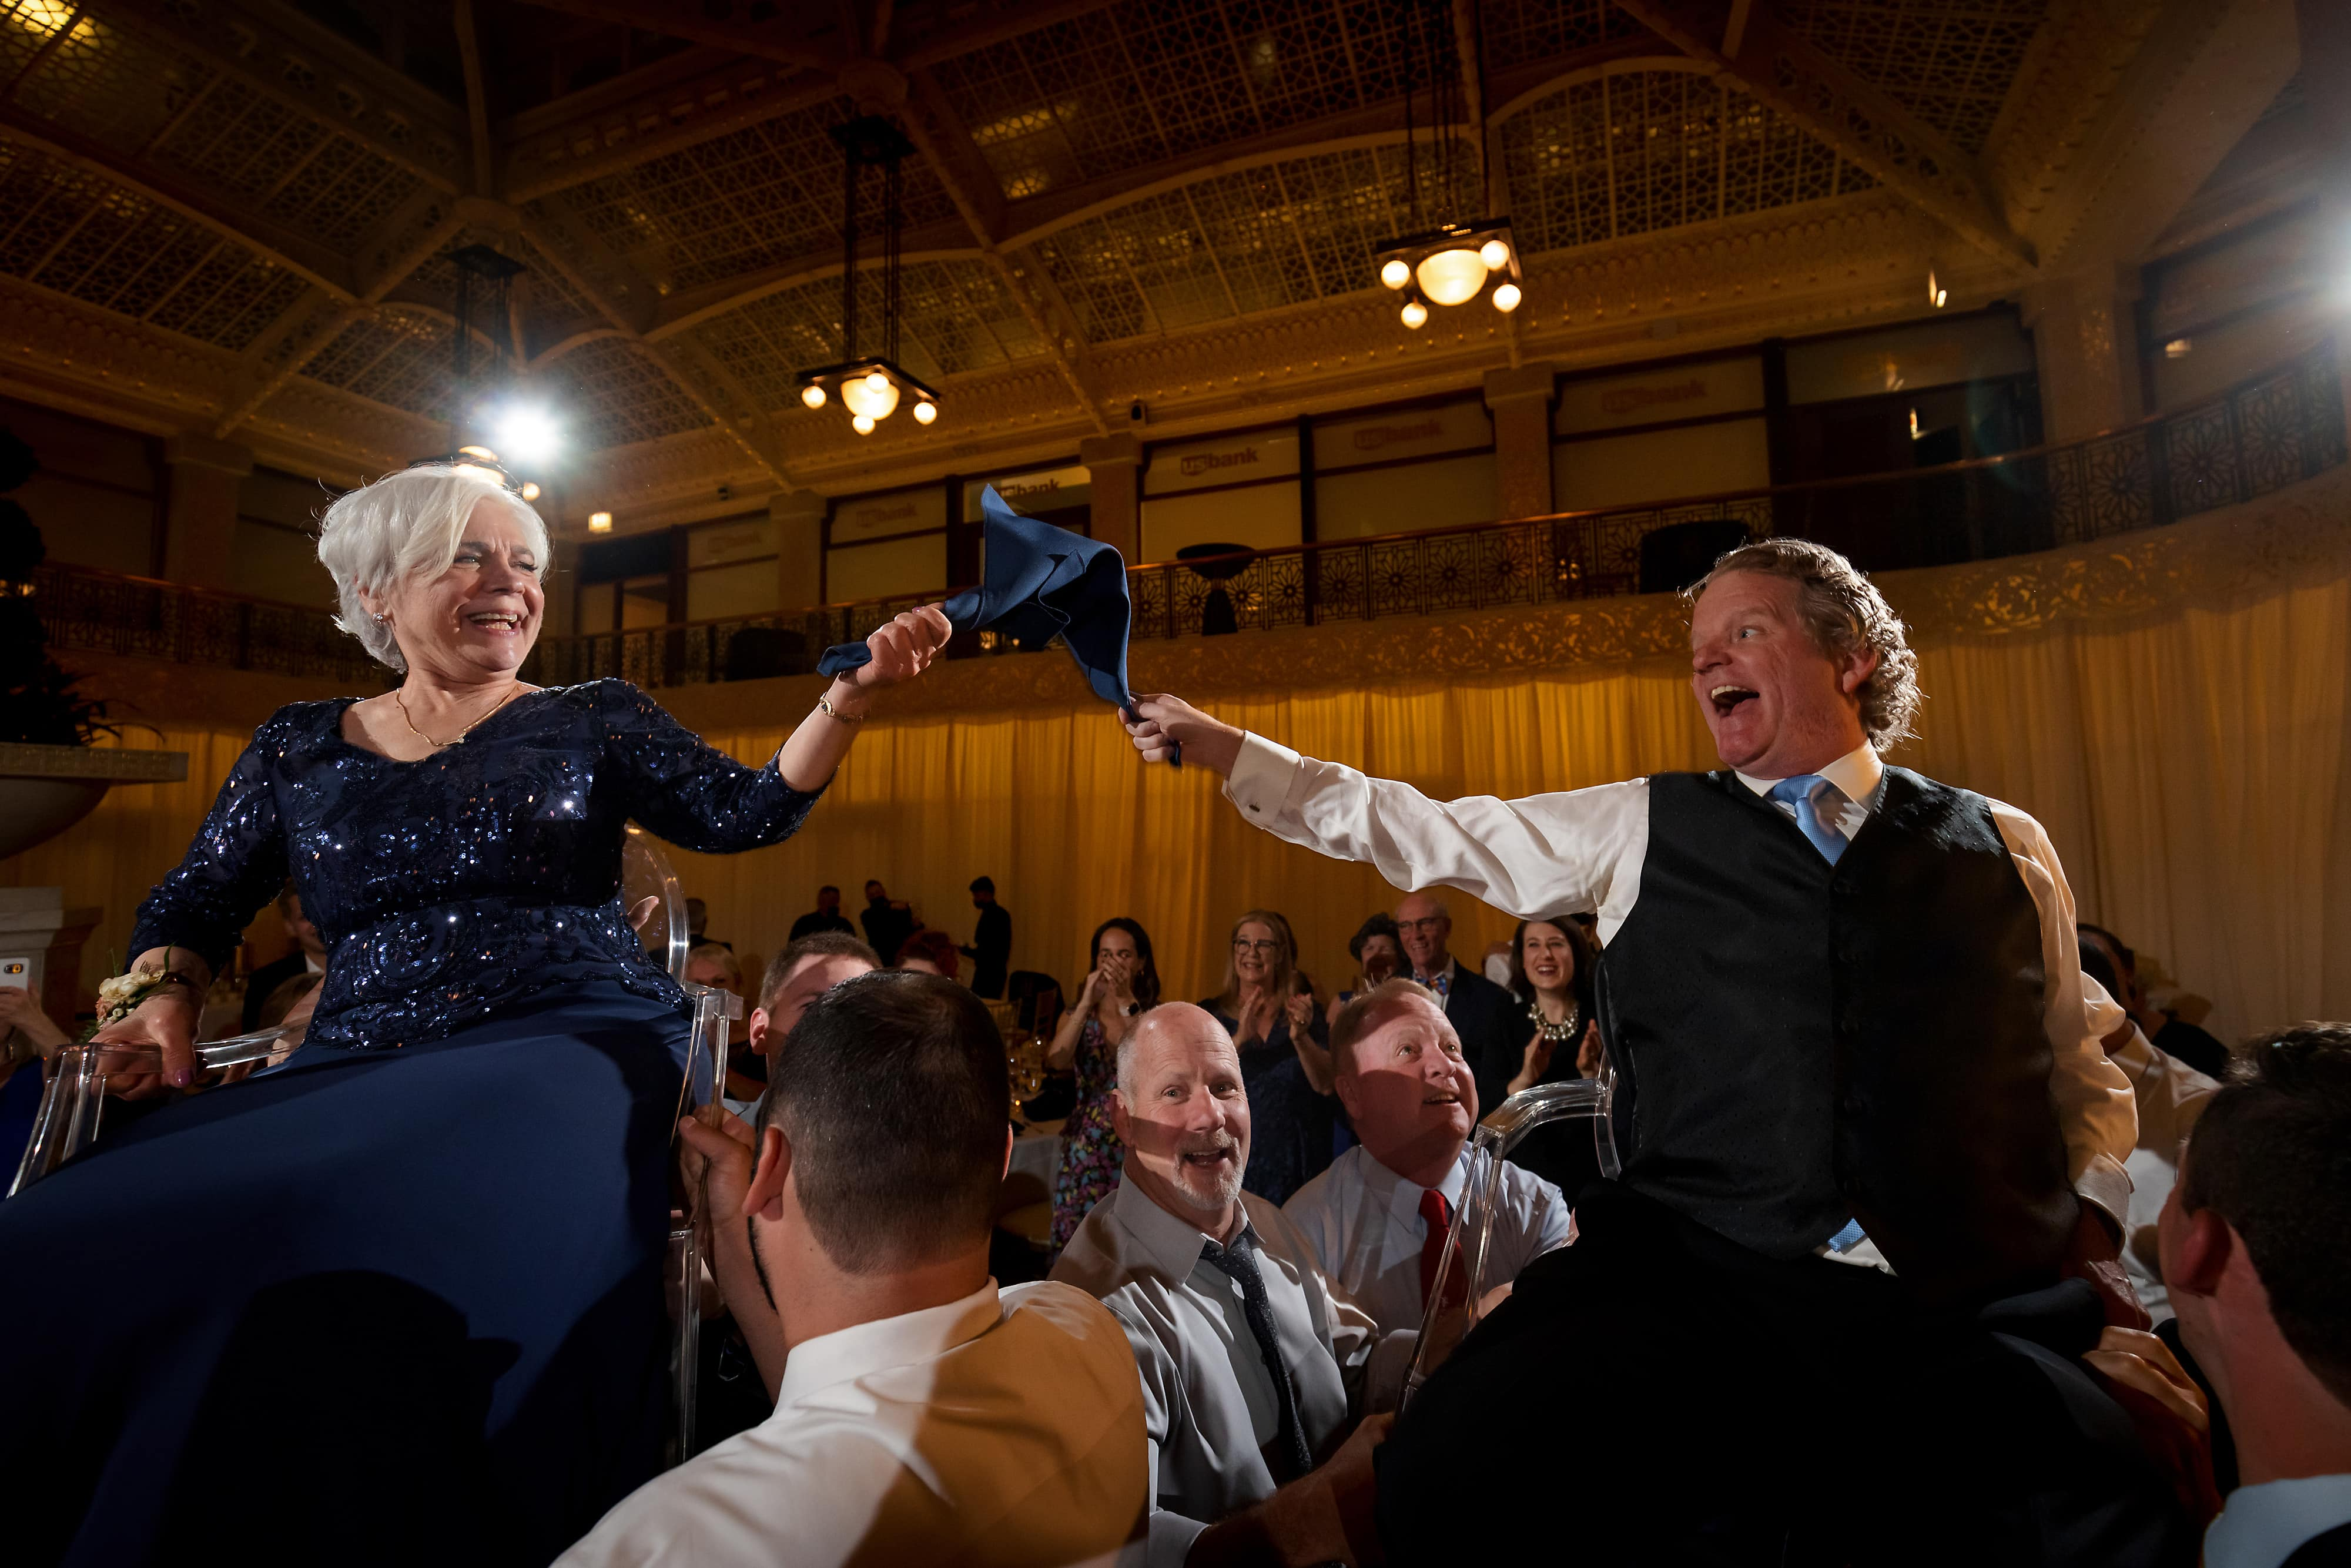 Parents of the bride are lifted in chairs by guests during Hora dance of wedding reception at the Rookery Building in Chicago